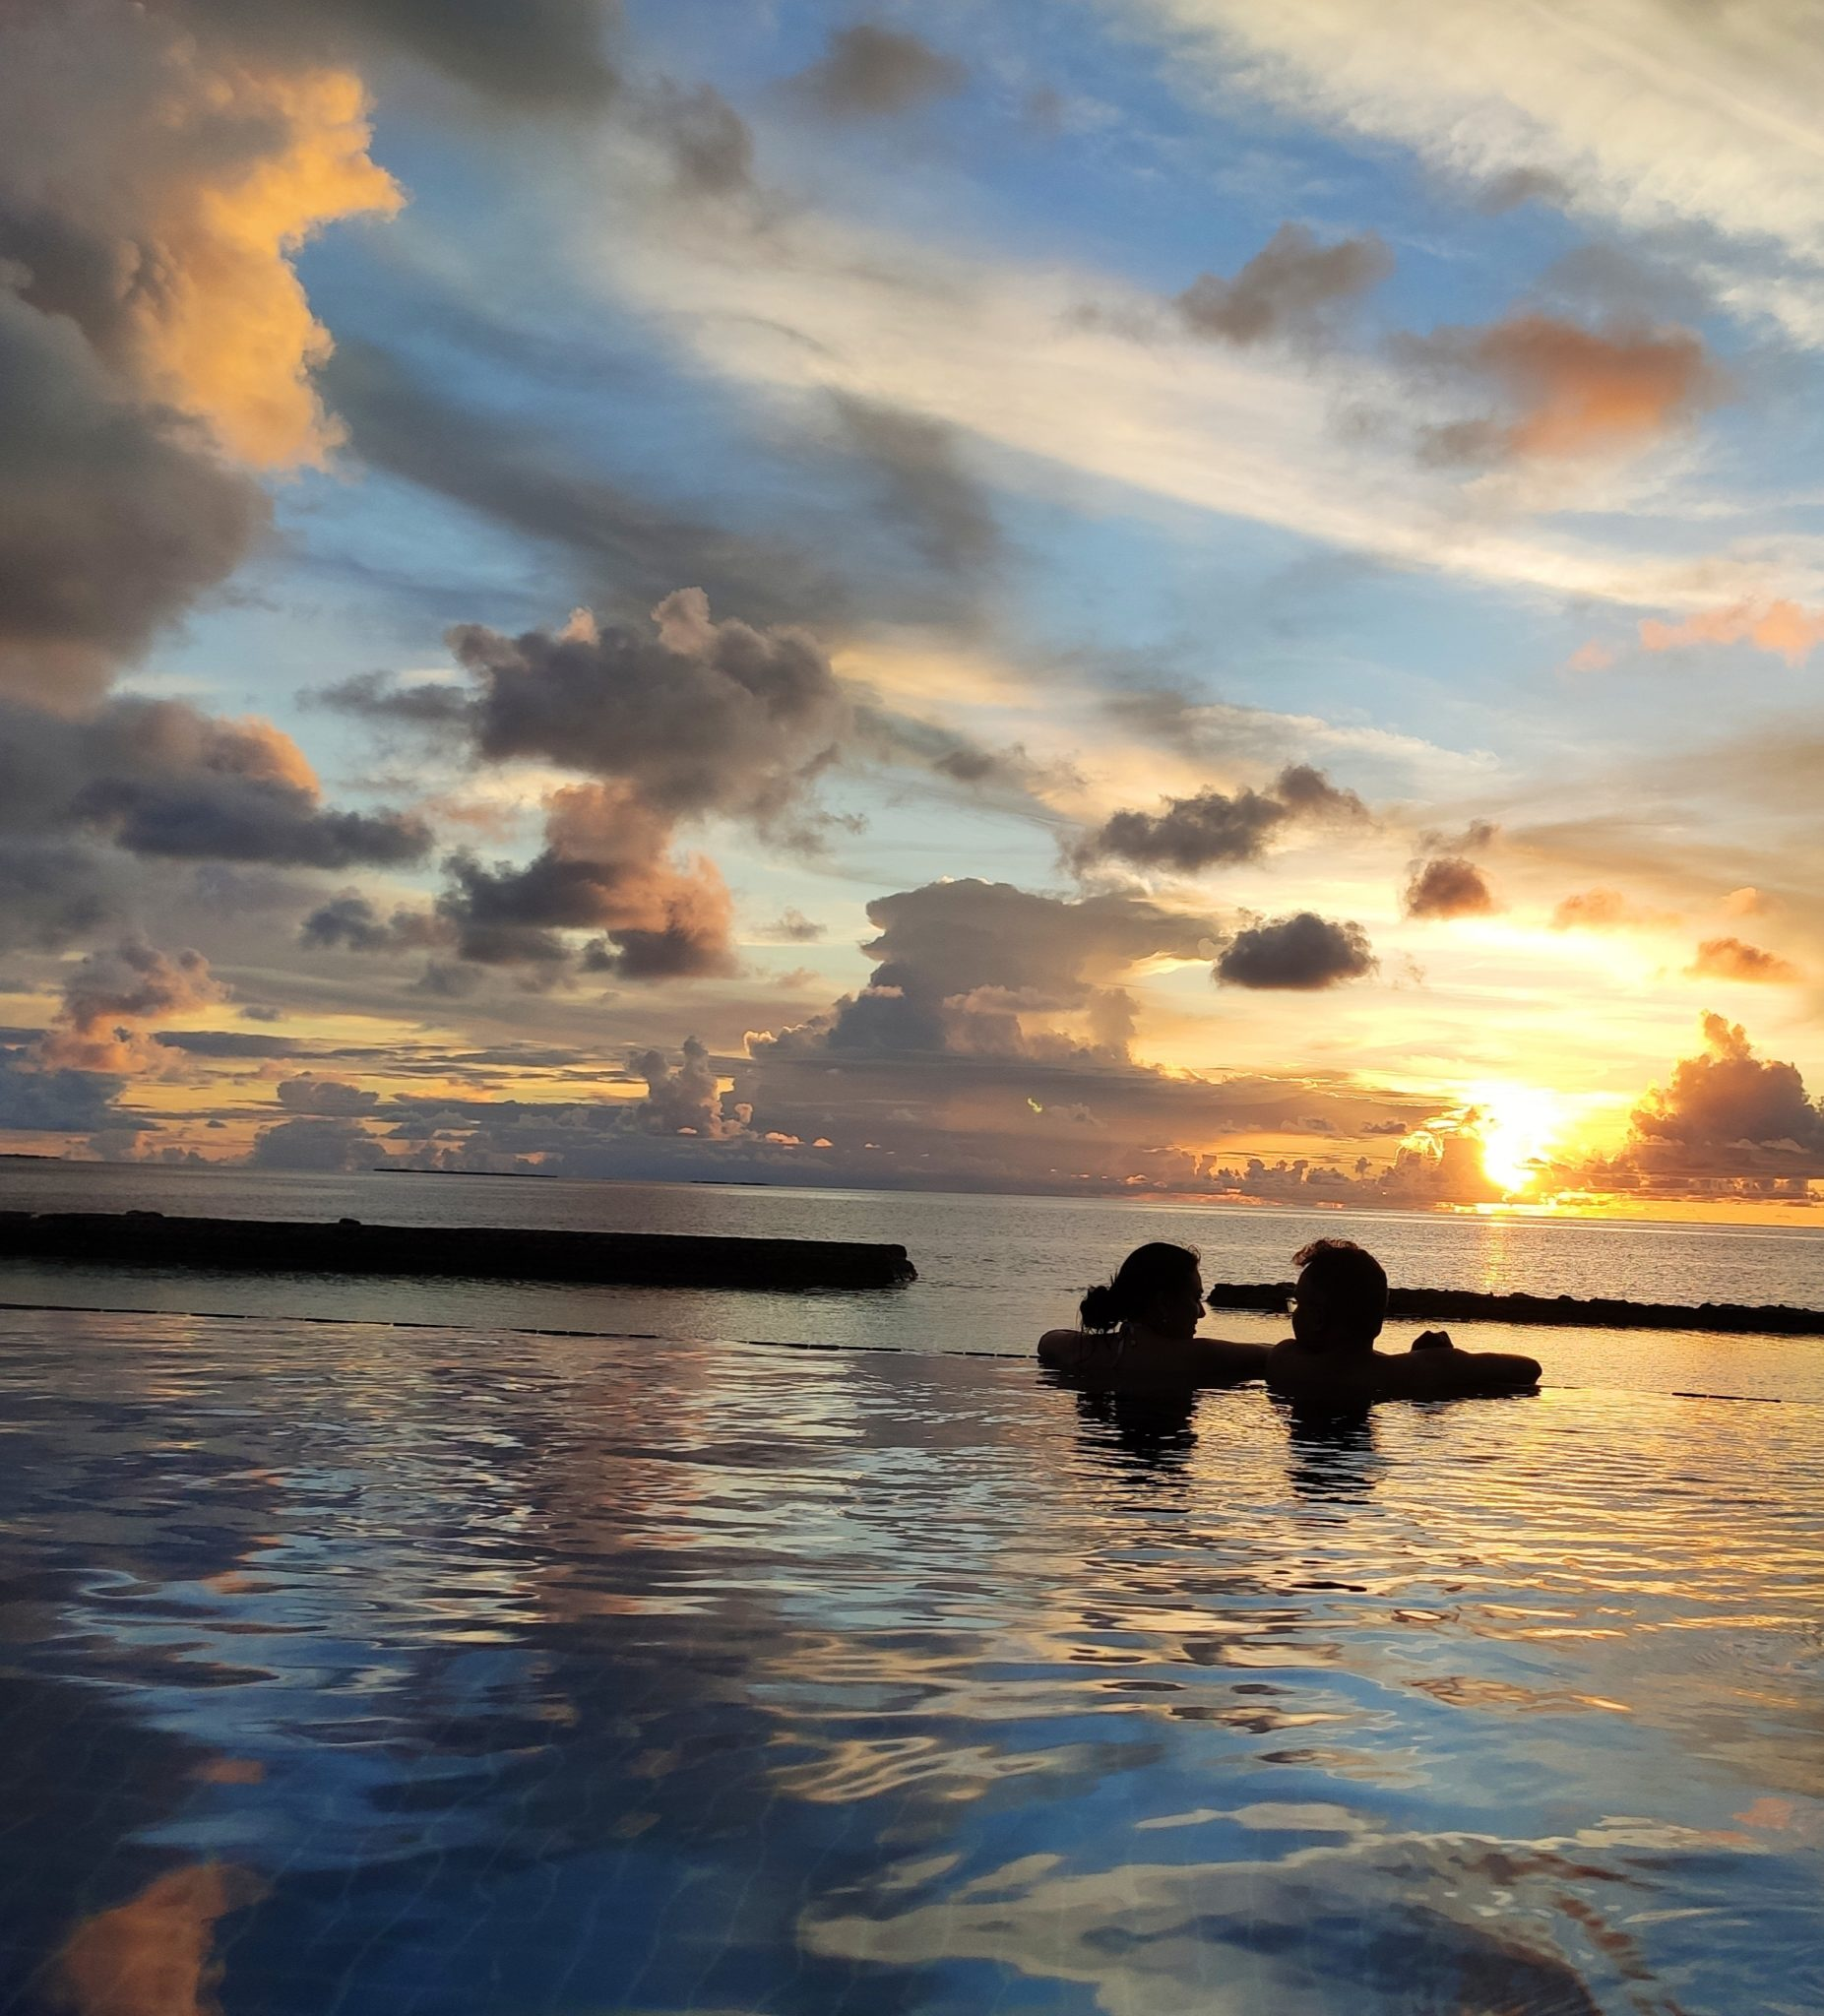 Sunset from the resort in Maldives